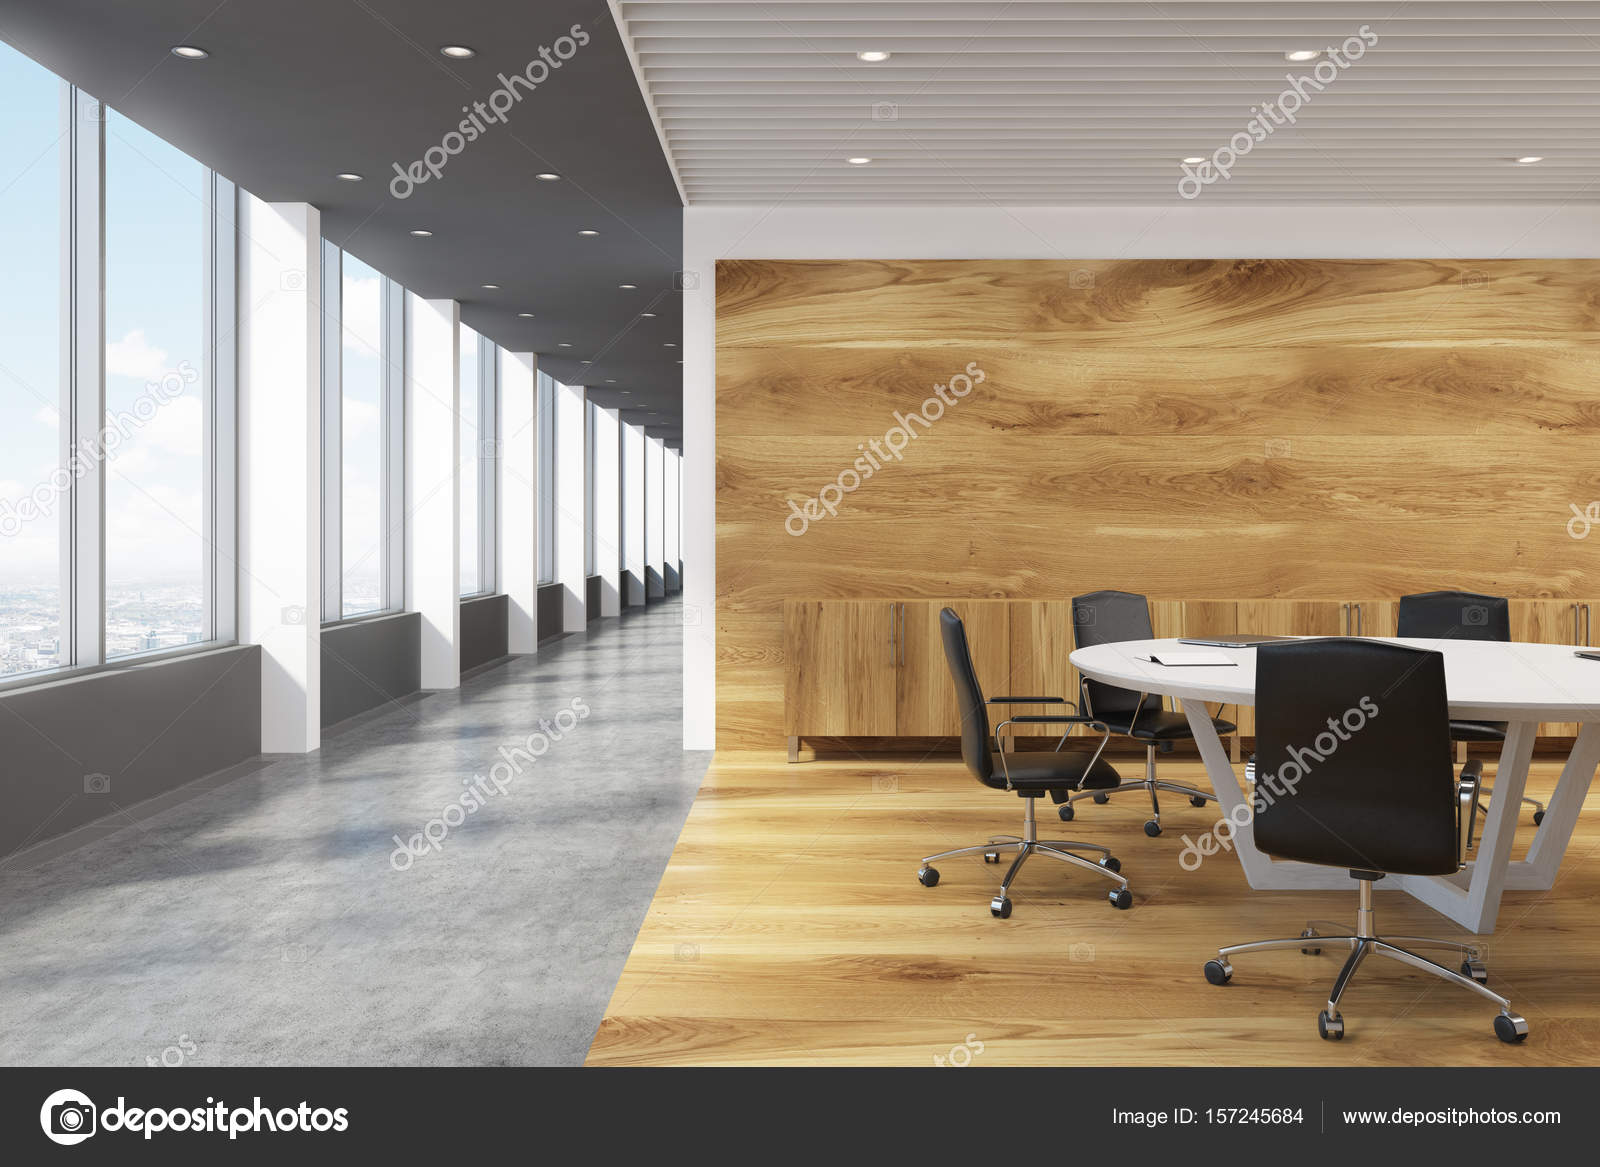 White Round Conference Room Table Lobby Stock Photo - Large white conference table